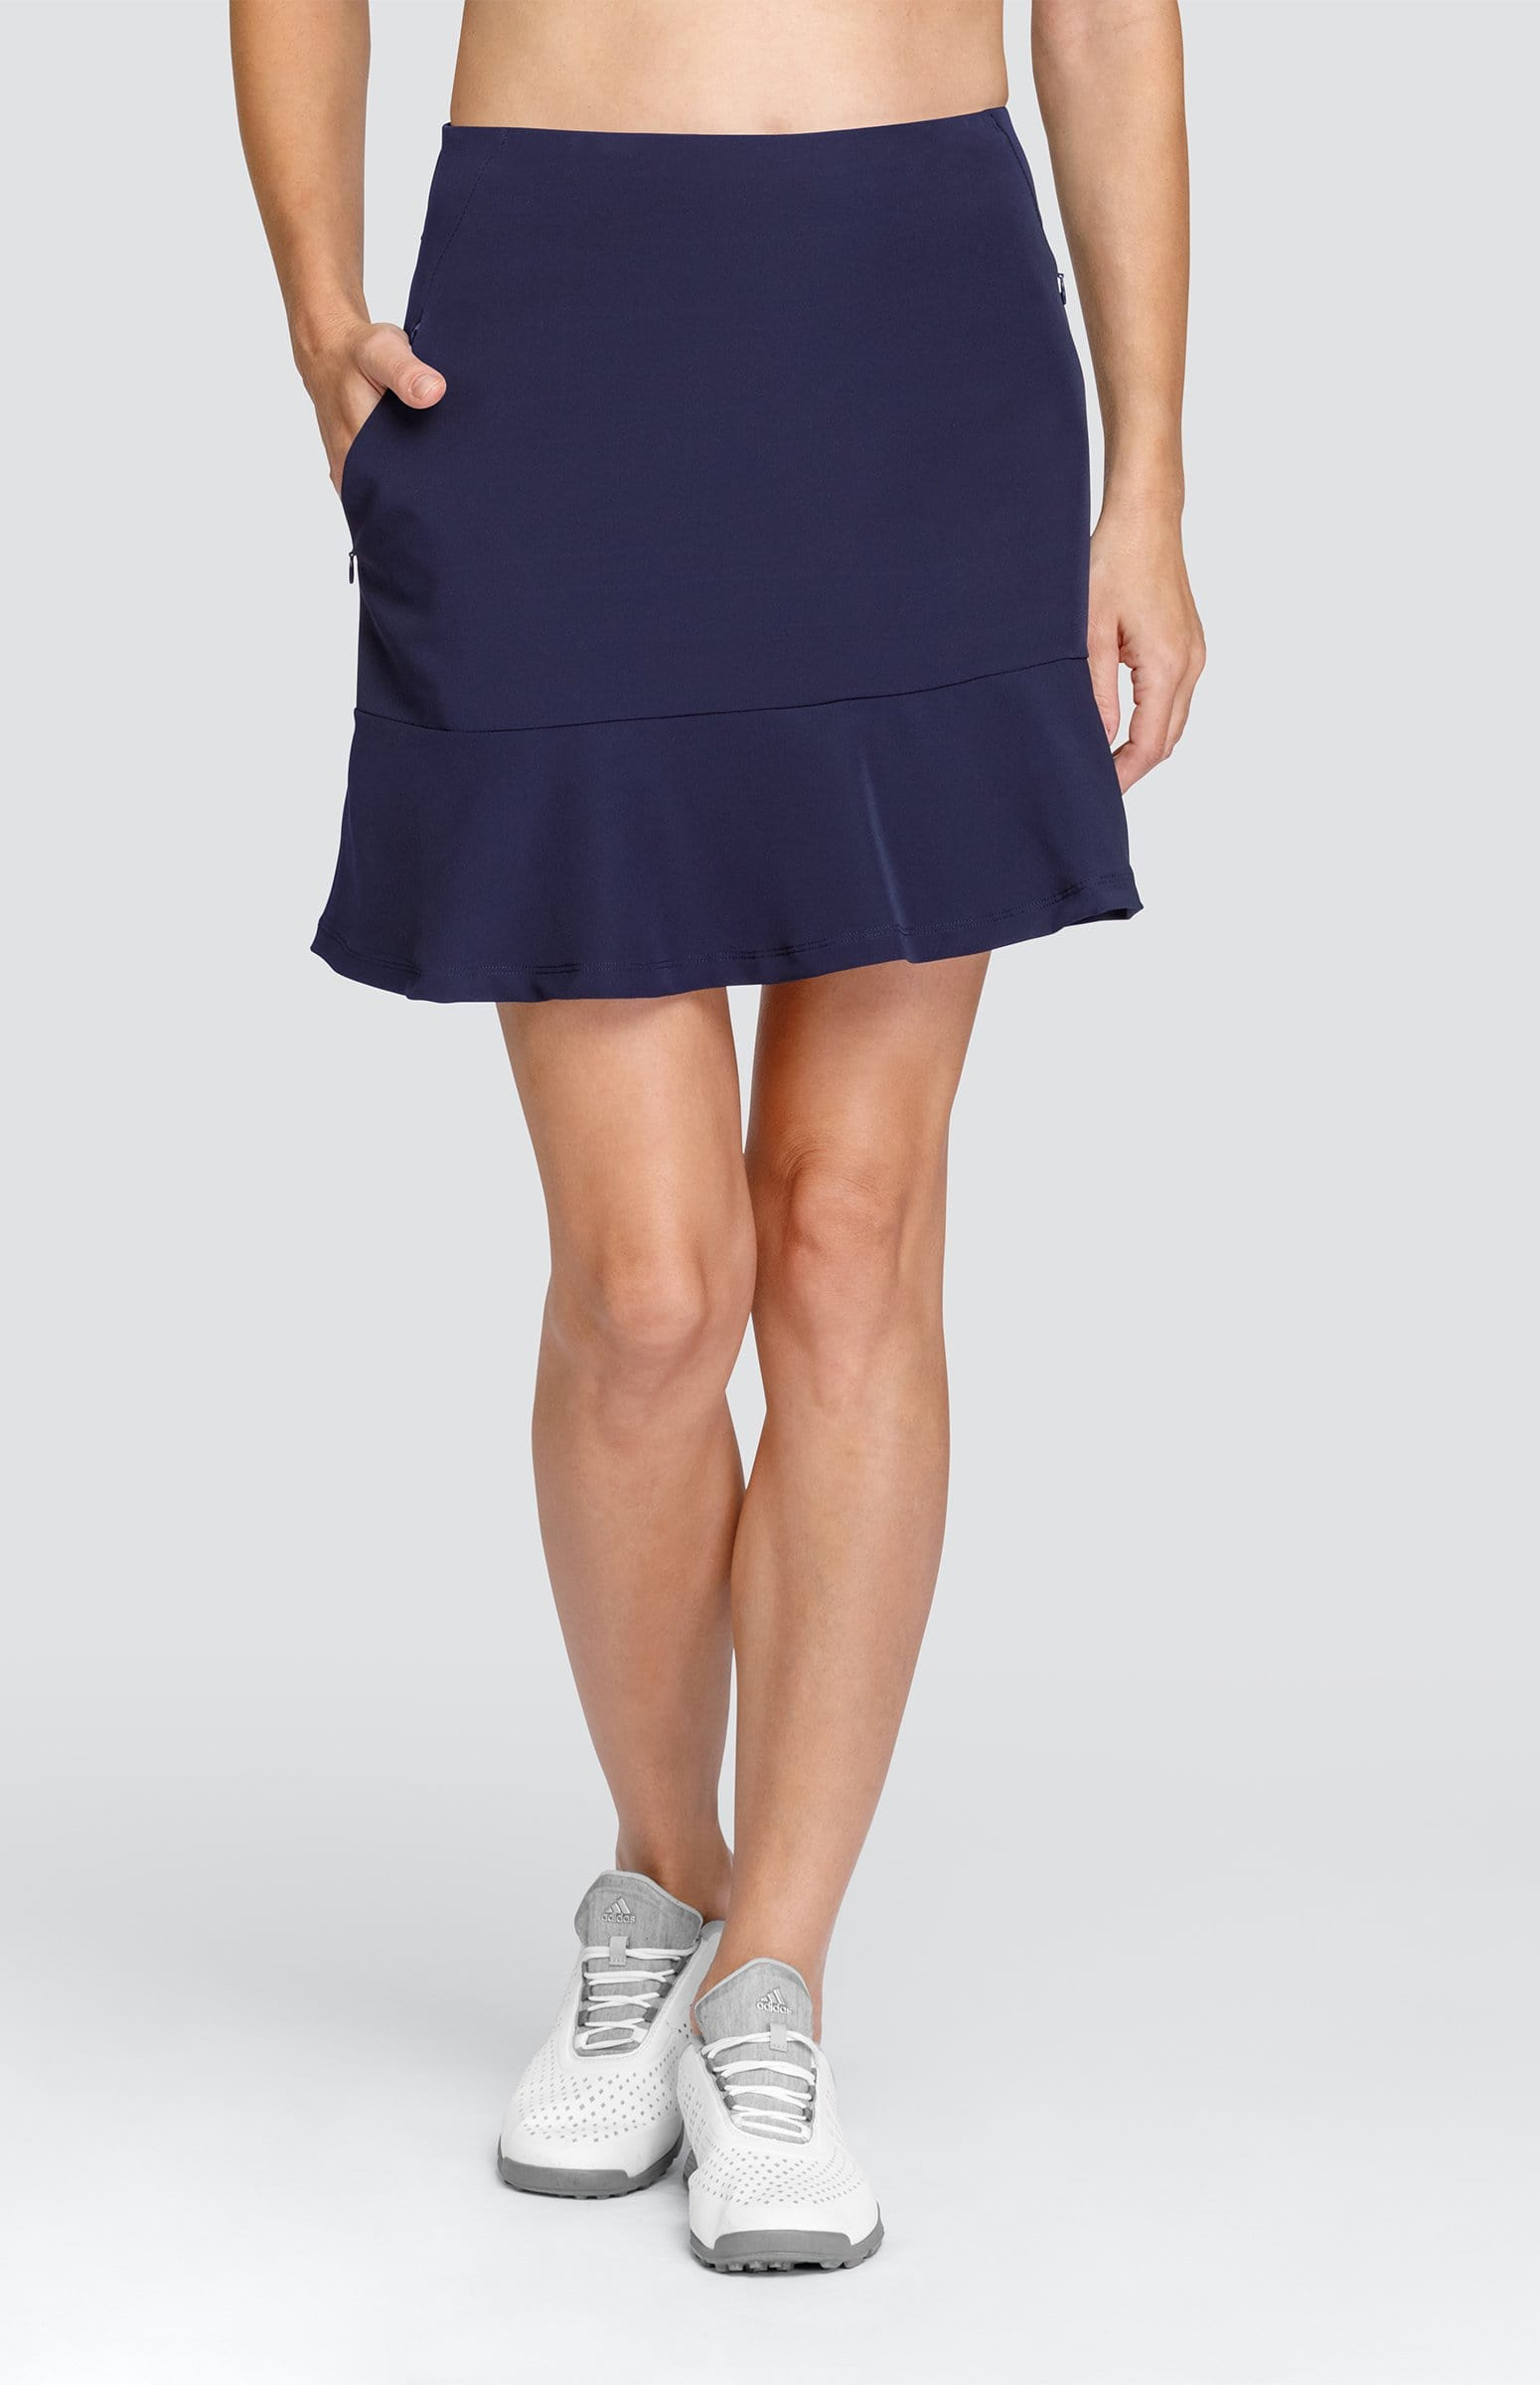 Allure Skort - Night Navy - 17